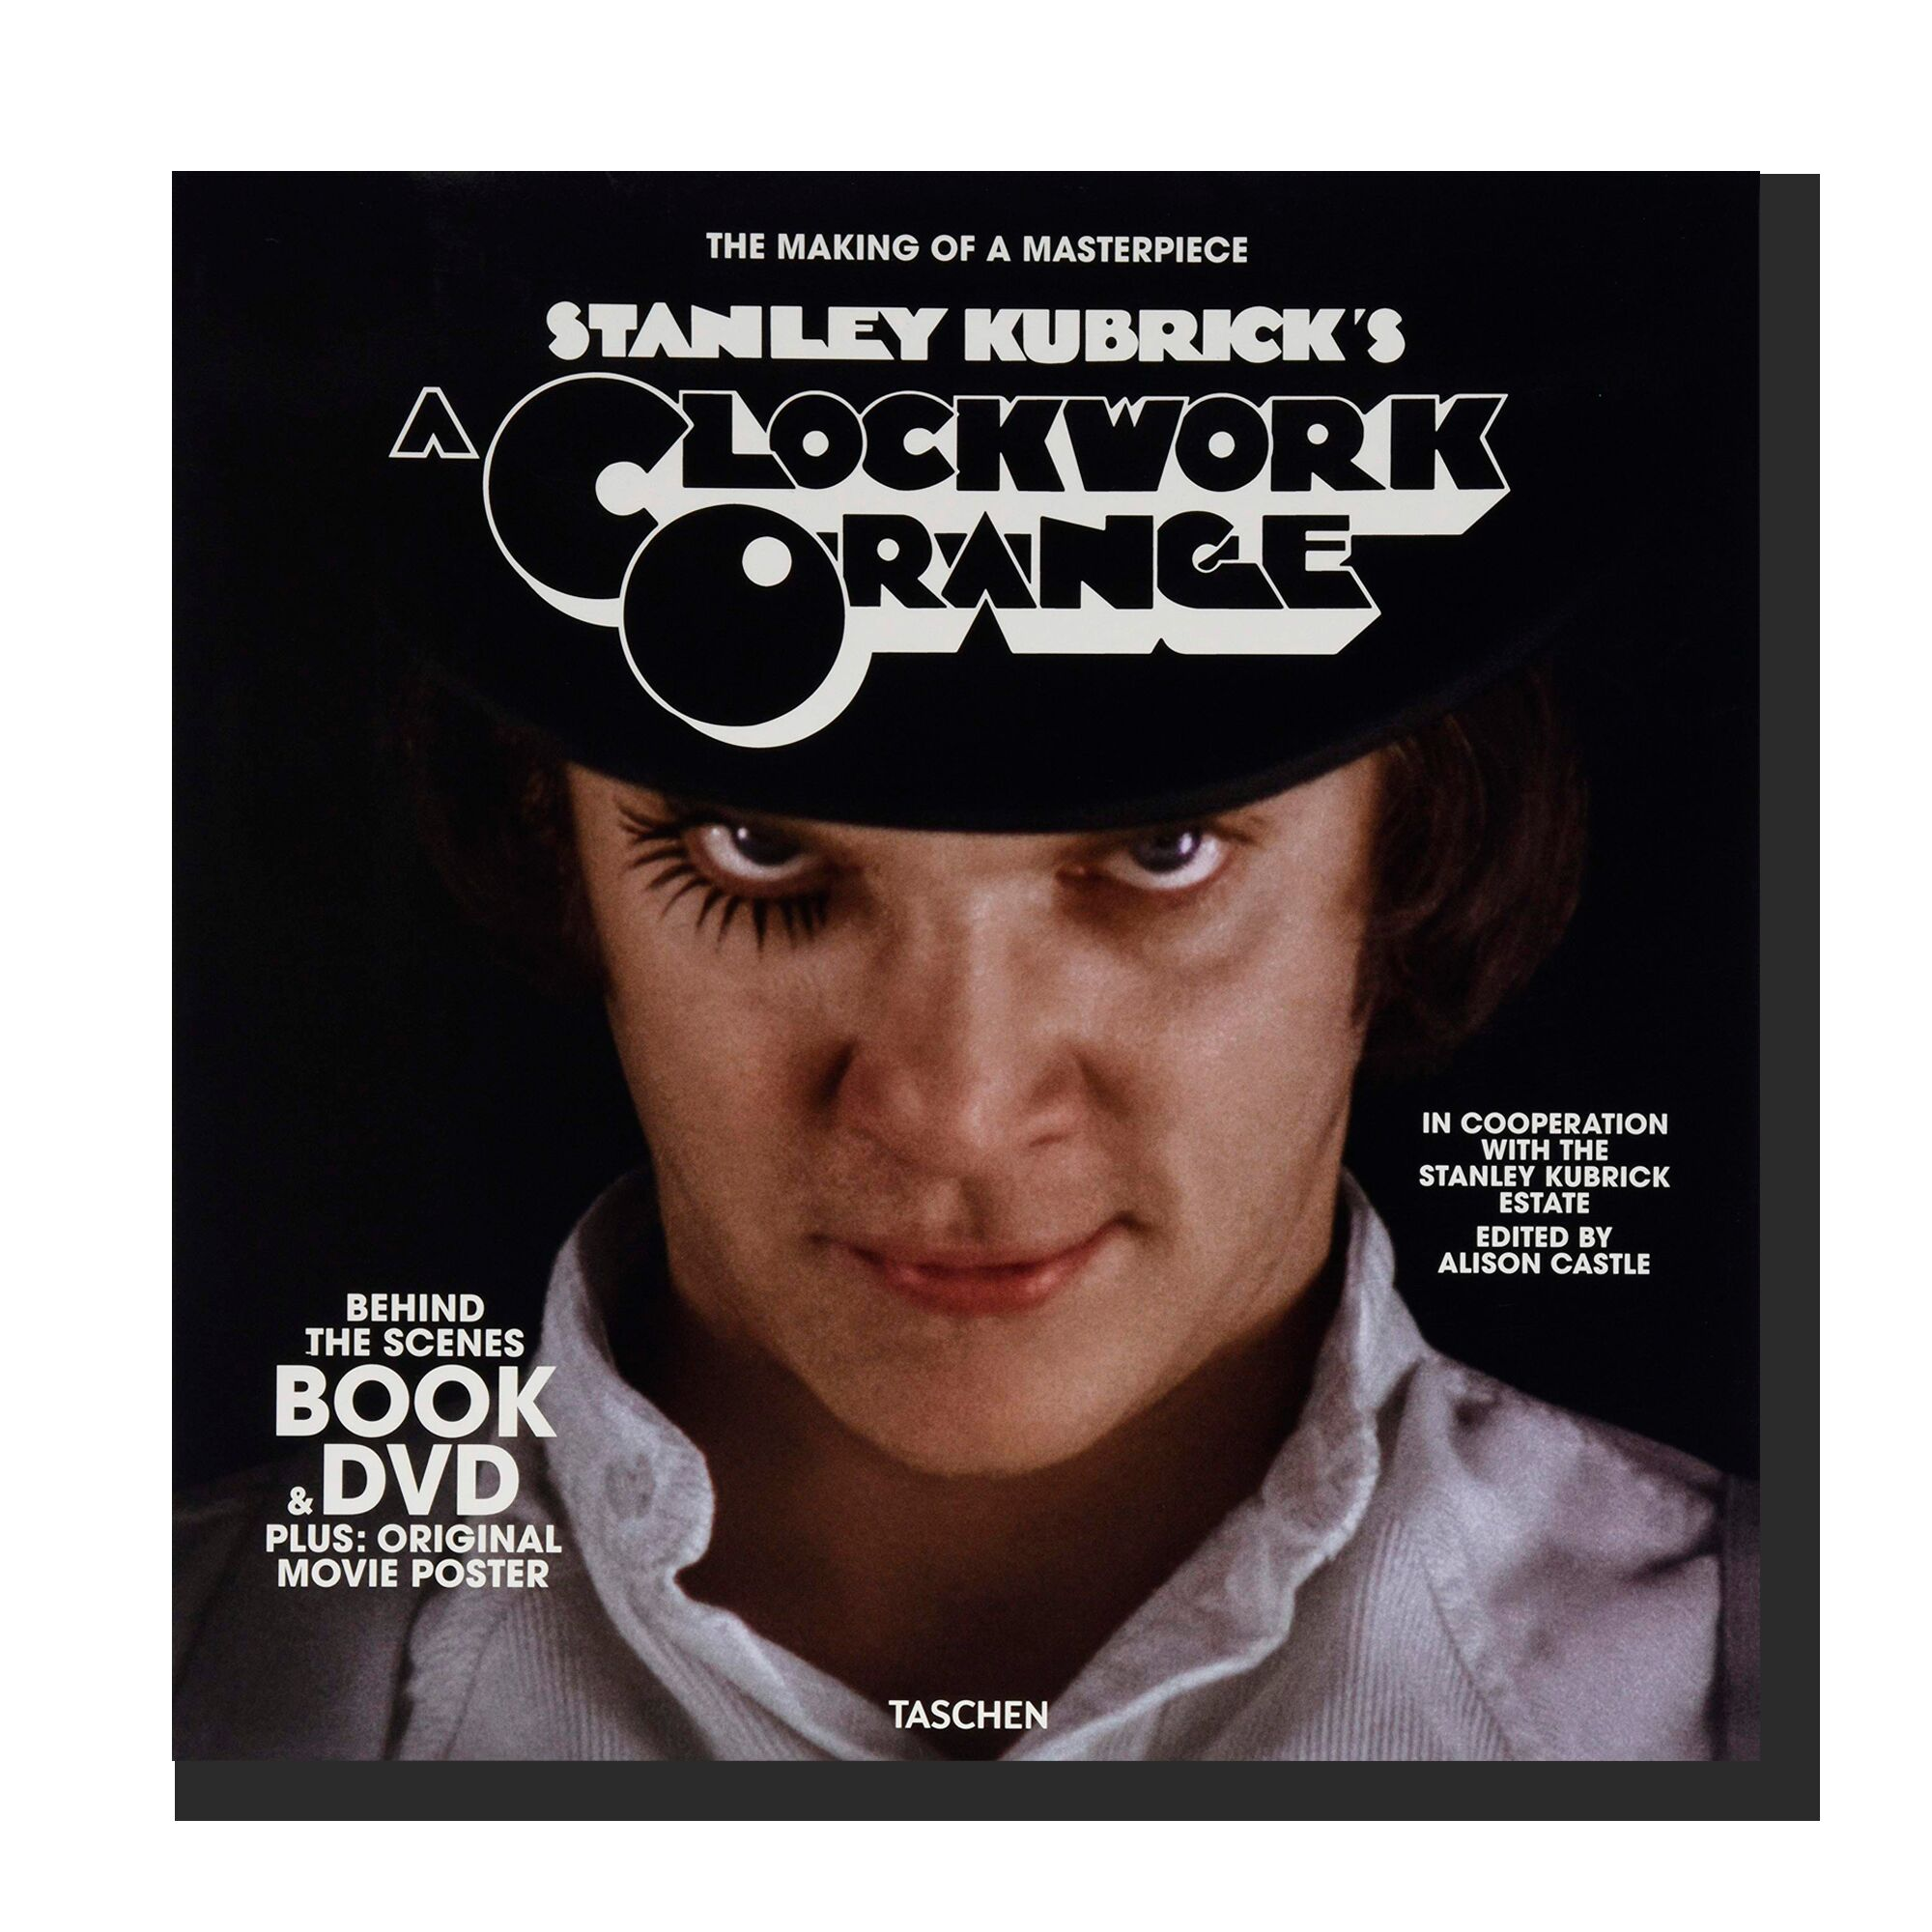 Kubrick's A Clockwork Orange. Book & DVD Set